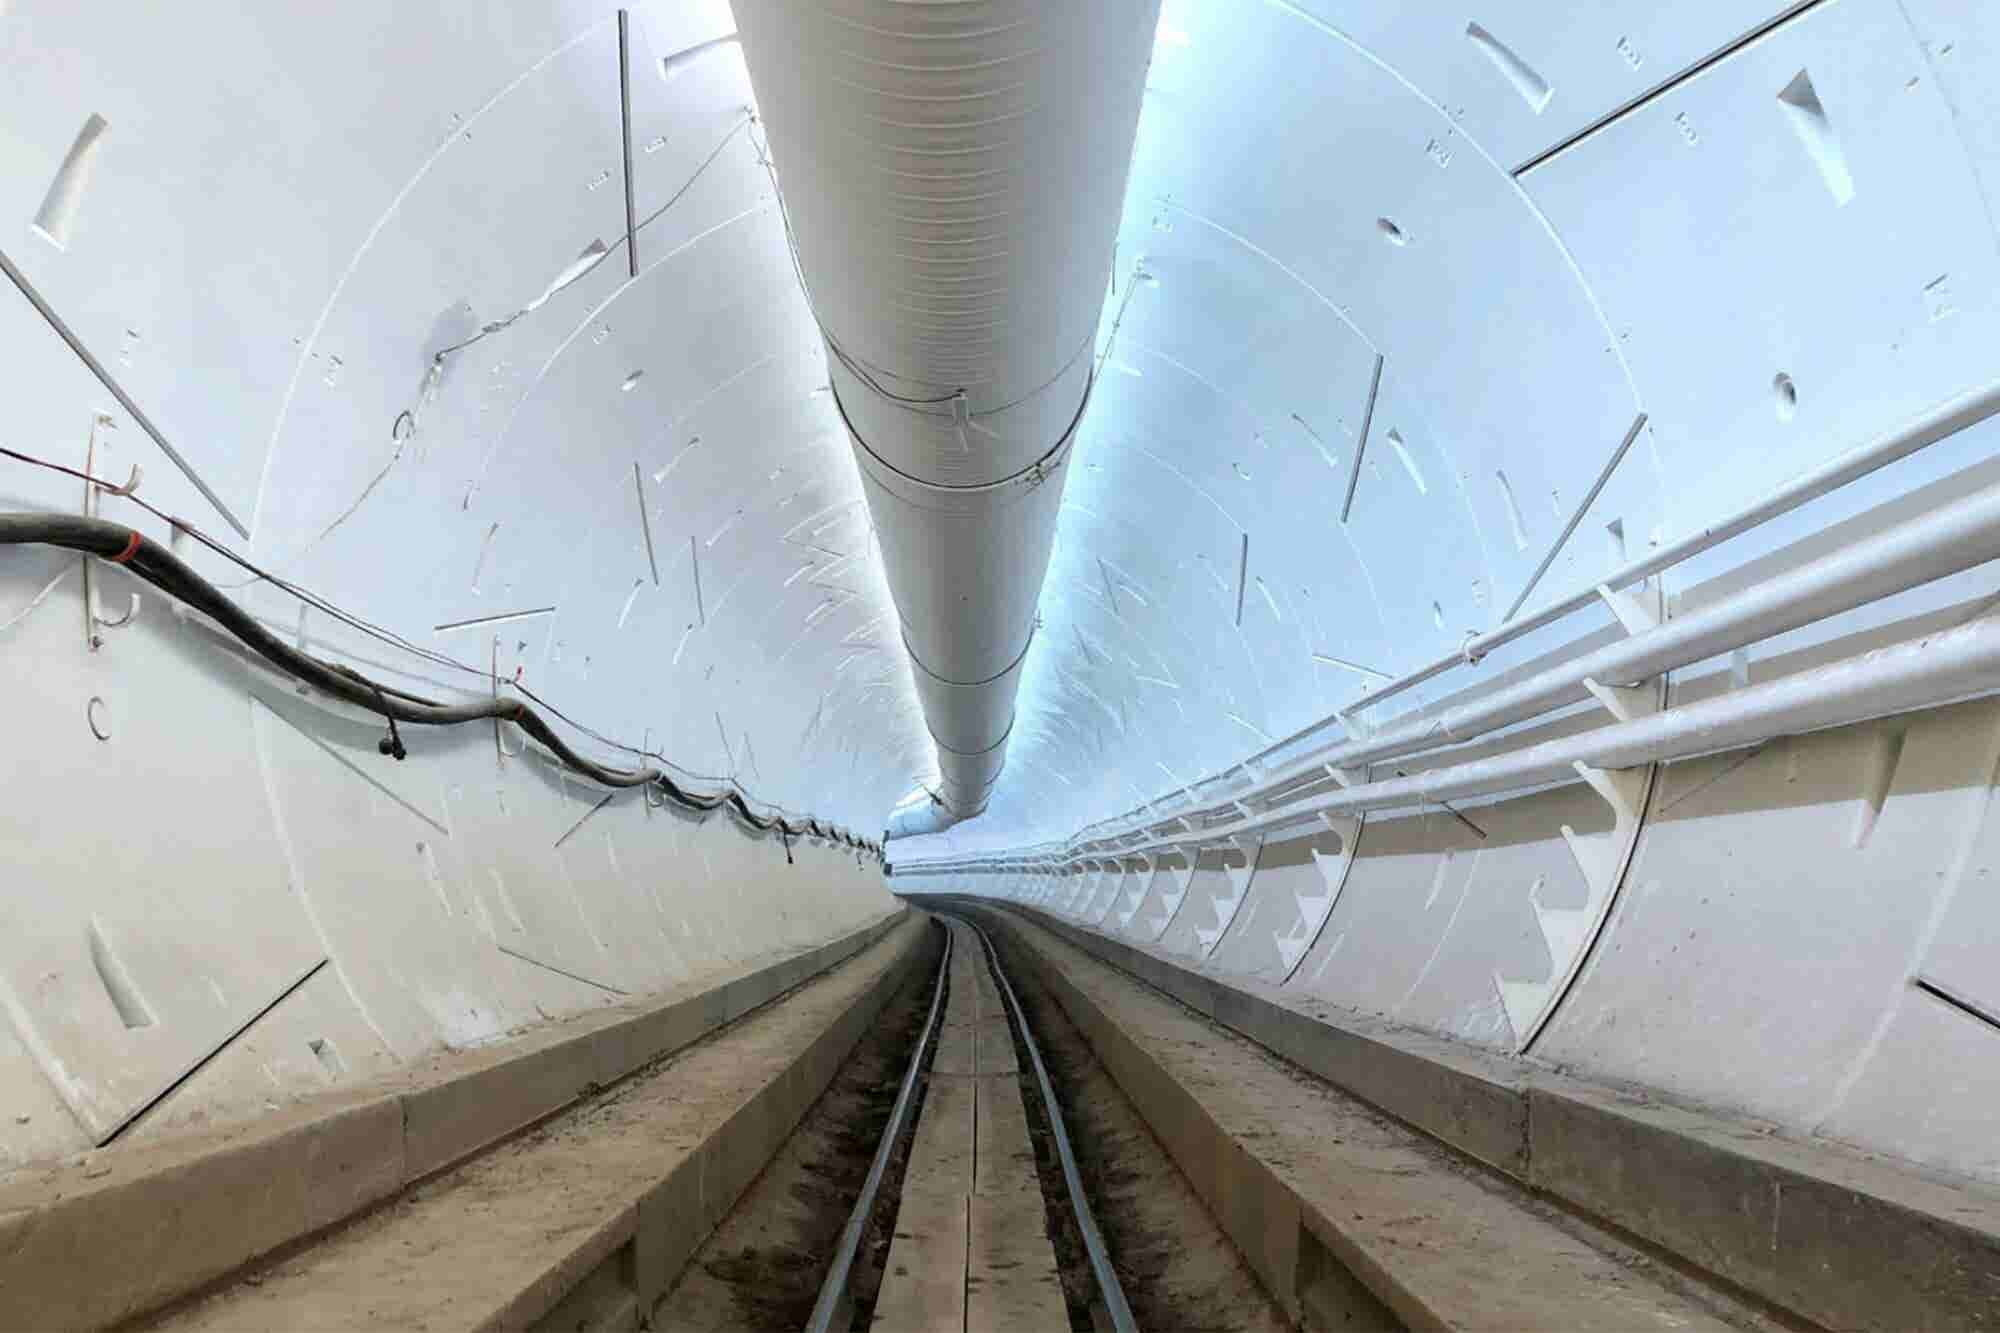 Elon Musk's Boring Company Abandons Plan for L.A. Westside Test Tunnel